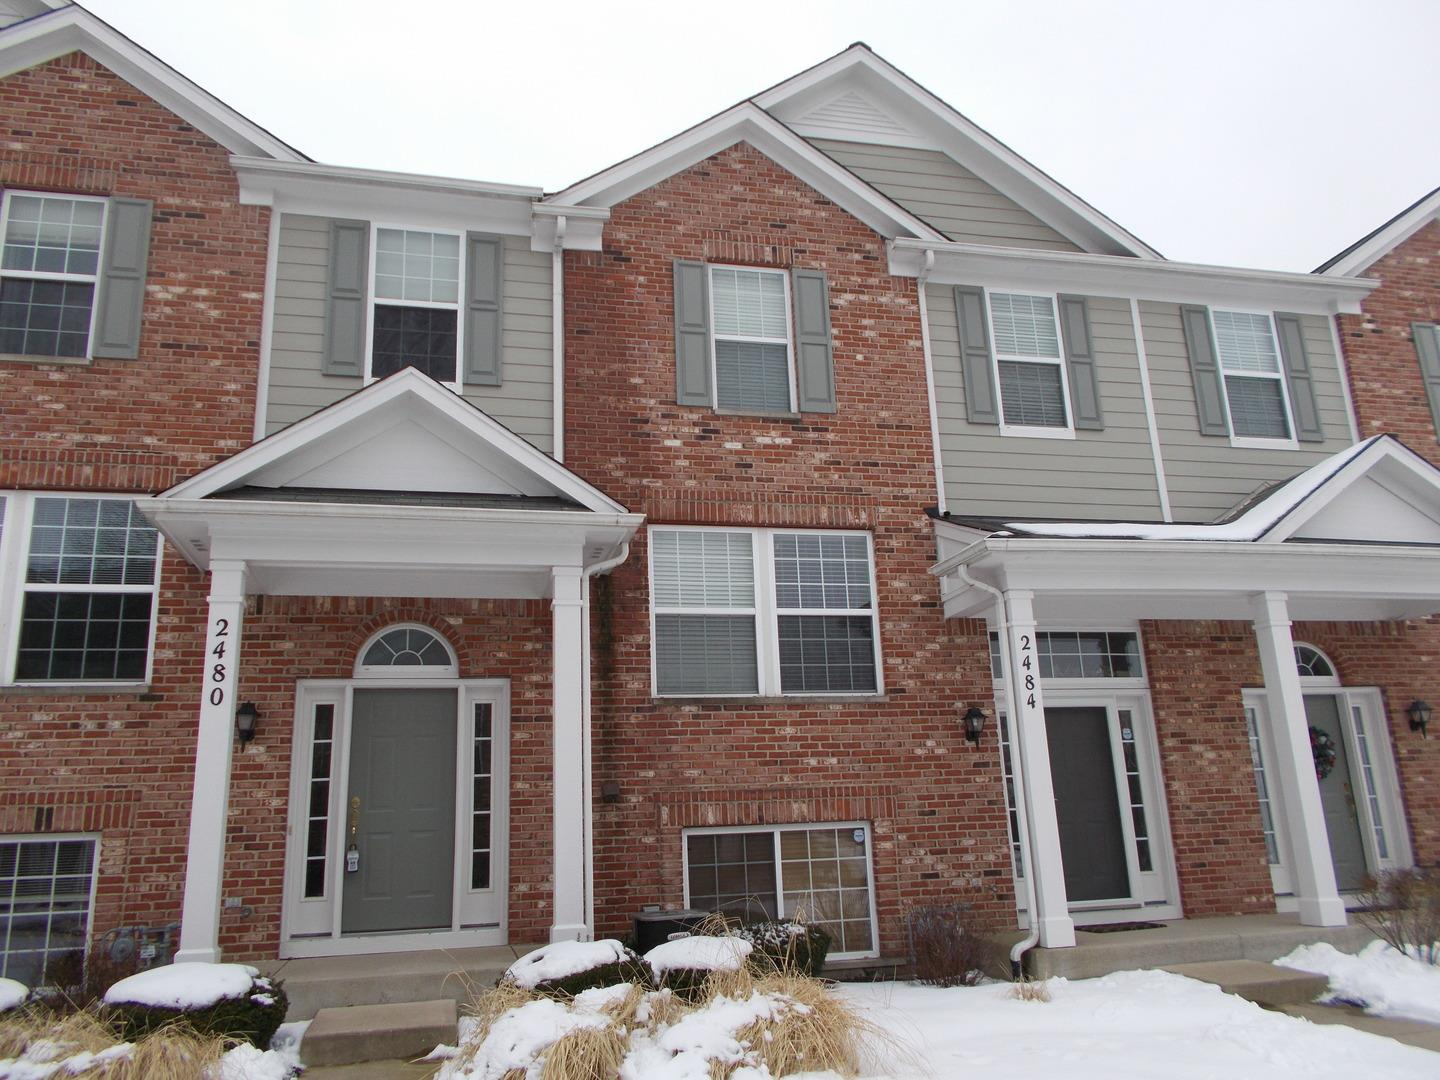 2480 Emily Lane #2480, Elgin, IL 60124 - #: 10592896